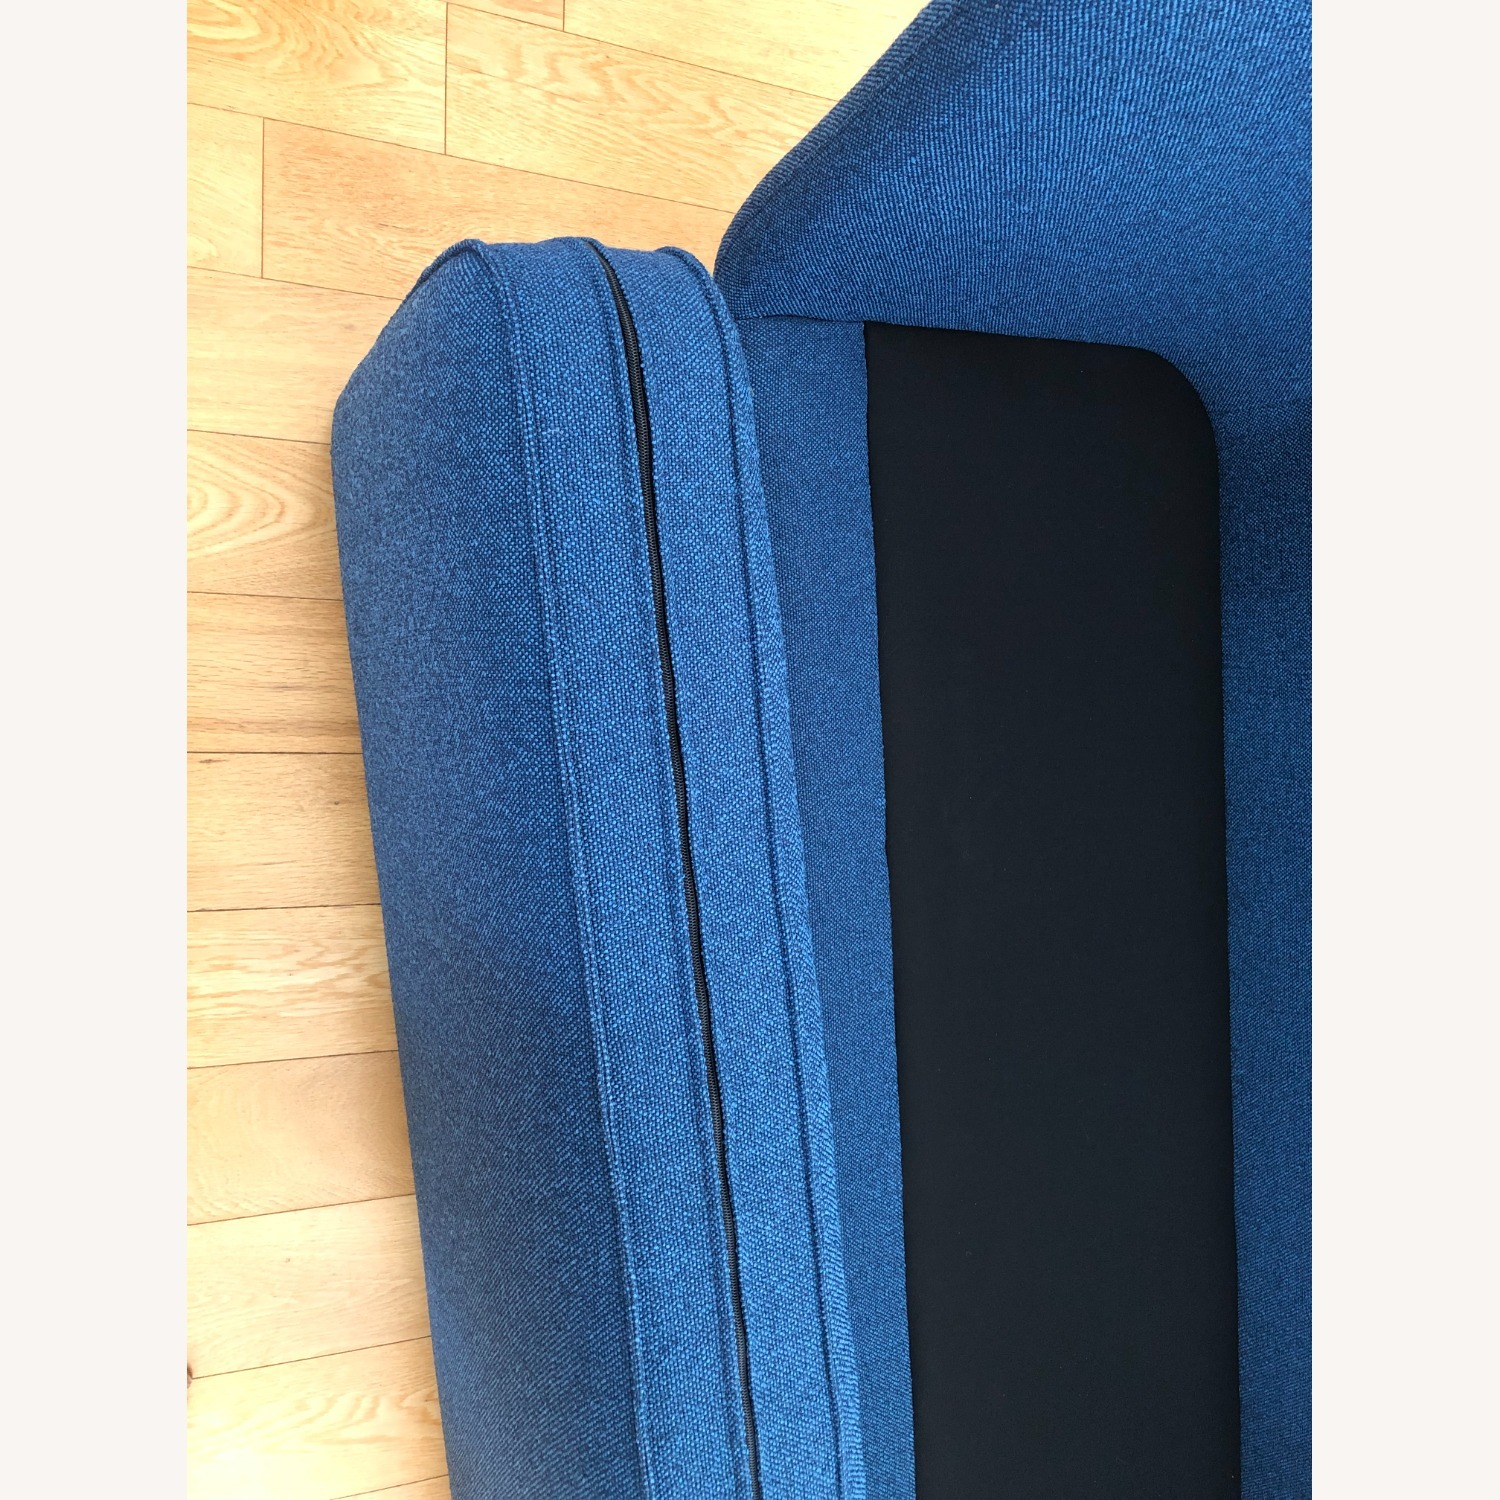 Knoll Rockwell Unscripted High Back Settee - image-6